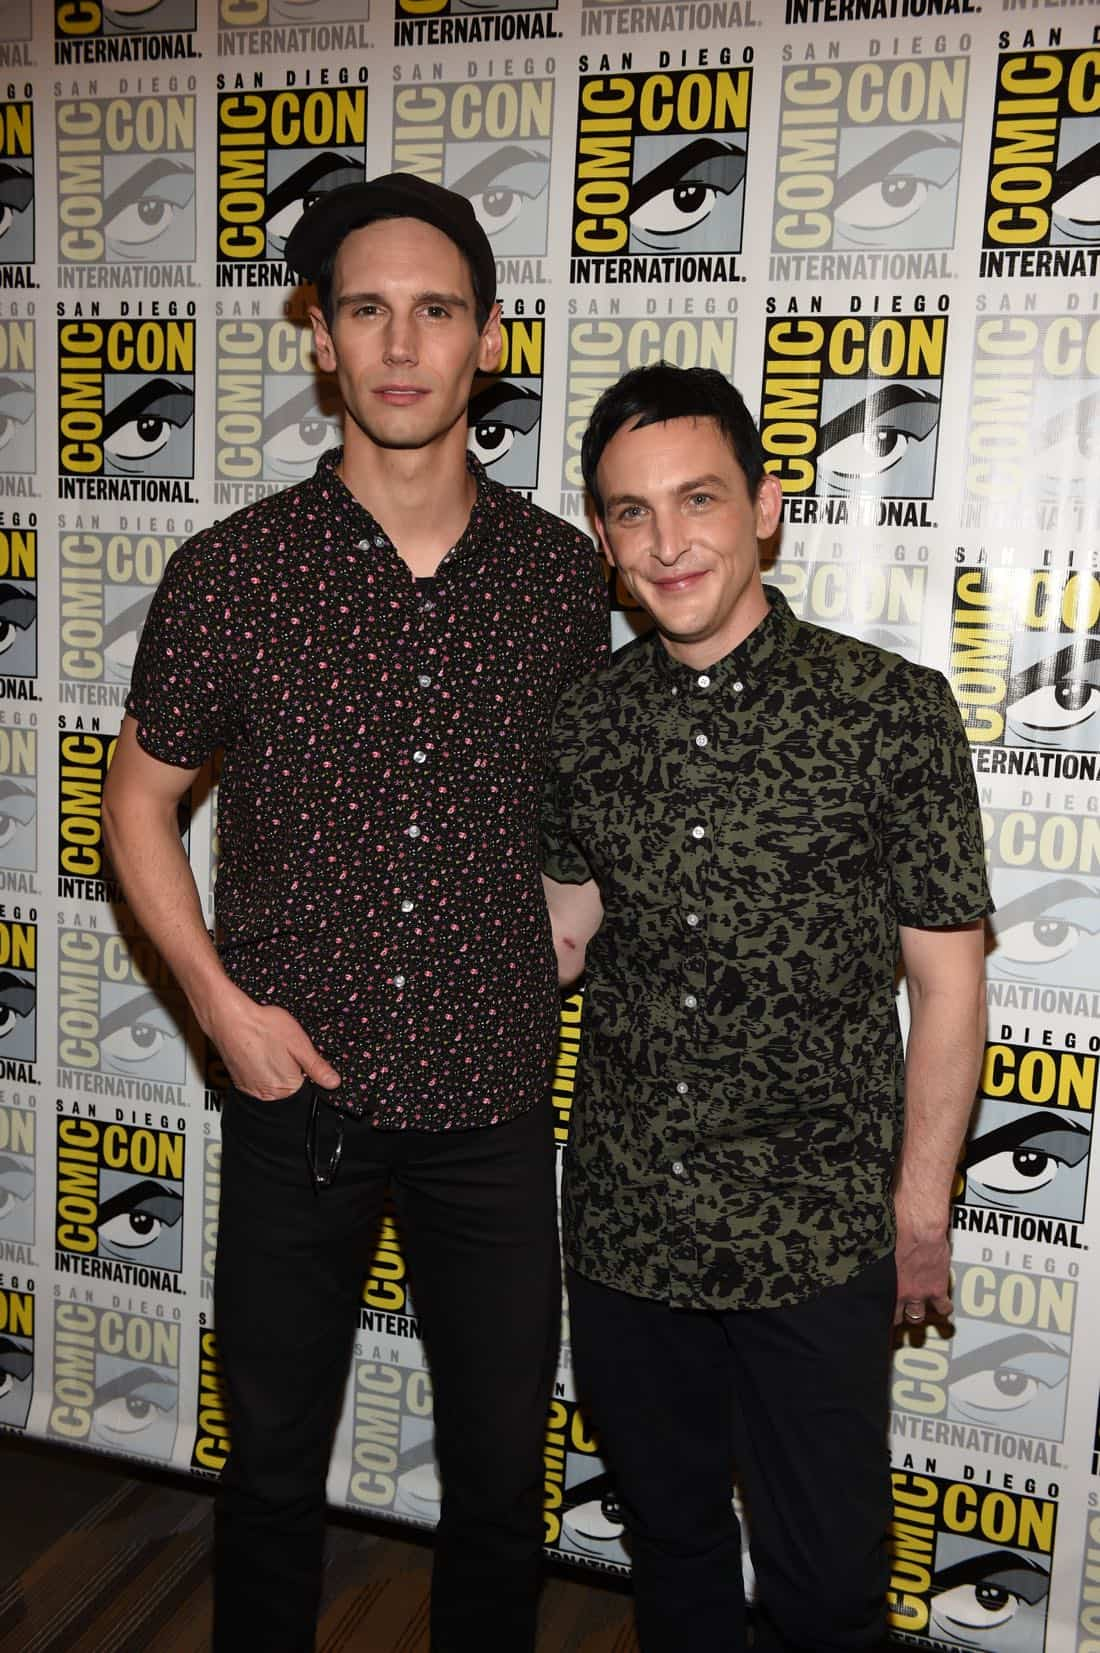 FOX FANFARE AT SAN DIEGO COMIC-CON © 2016: GOTHAM cast member Cory Michael Smith and Robin Lord Taylor during GOTHAM press room on Saturday, July 23 at the FOX FANFARE AT SAN DIEGO COMIC-CON © 2016. CR: Scott Kirkland/FOX © 2016 FOX BROADCASTING